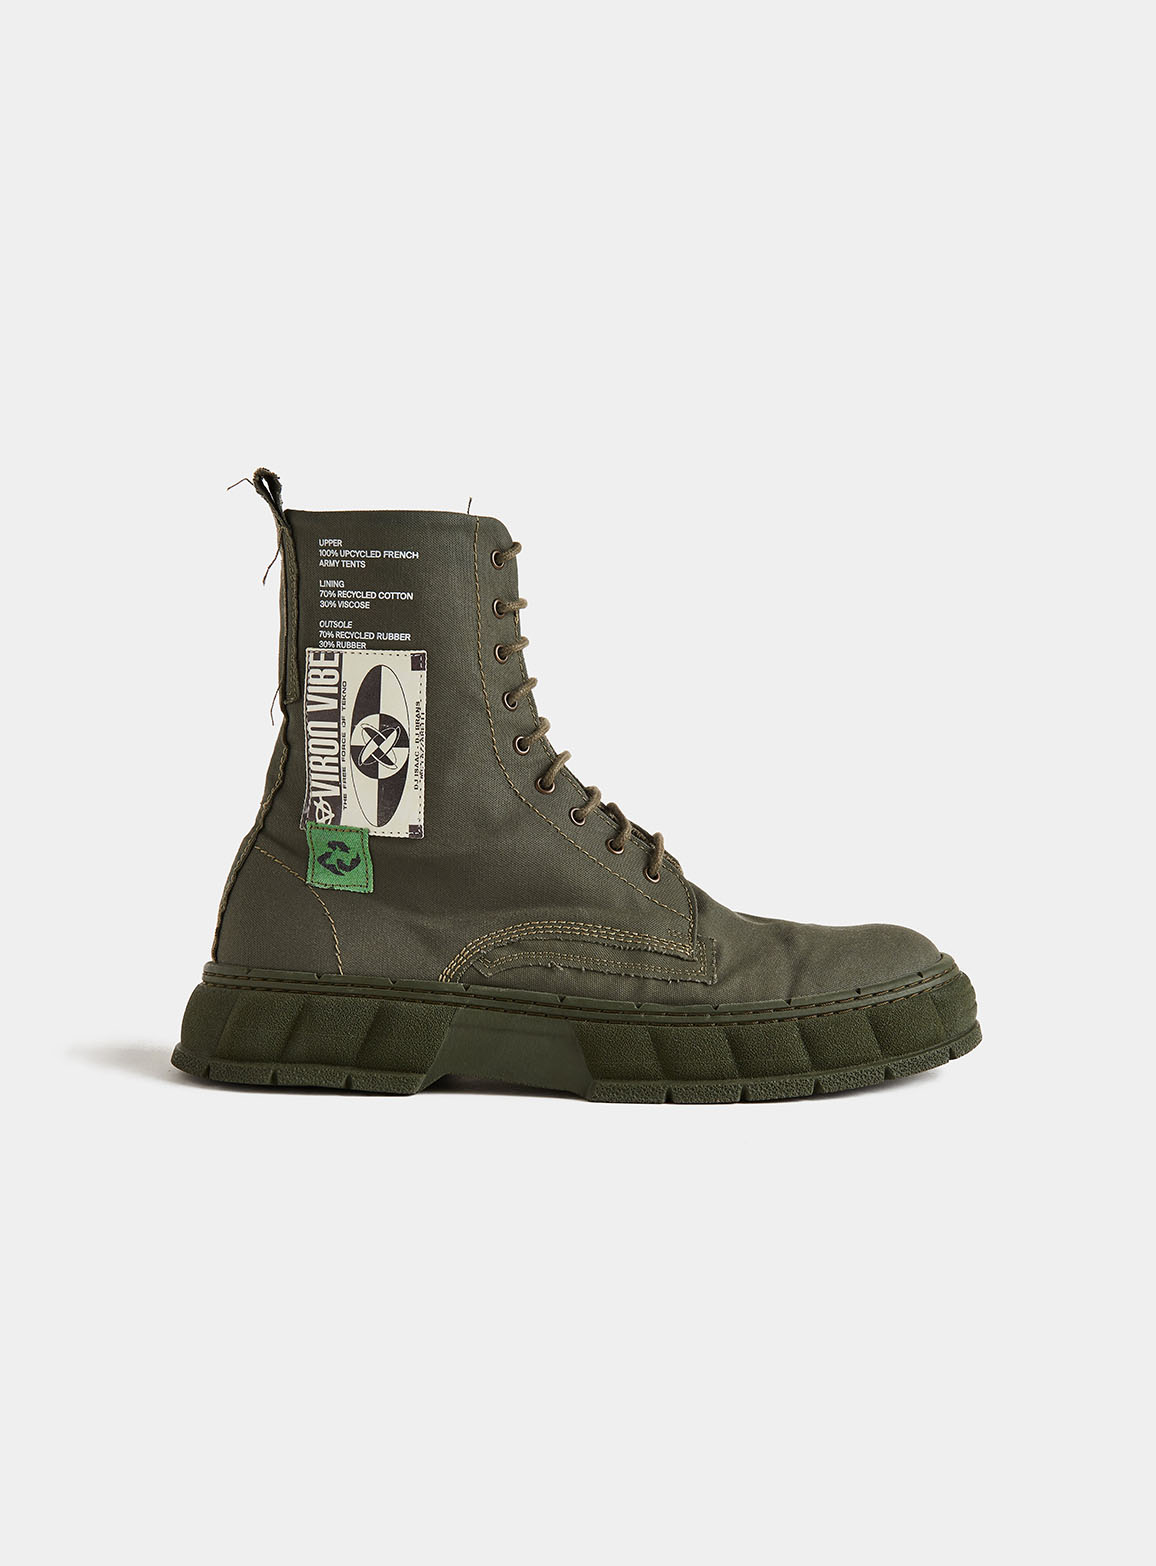 1992 boots